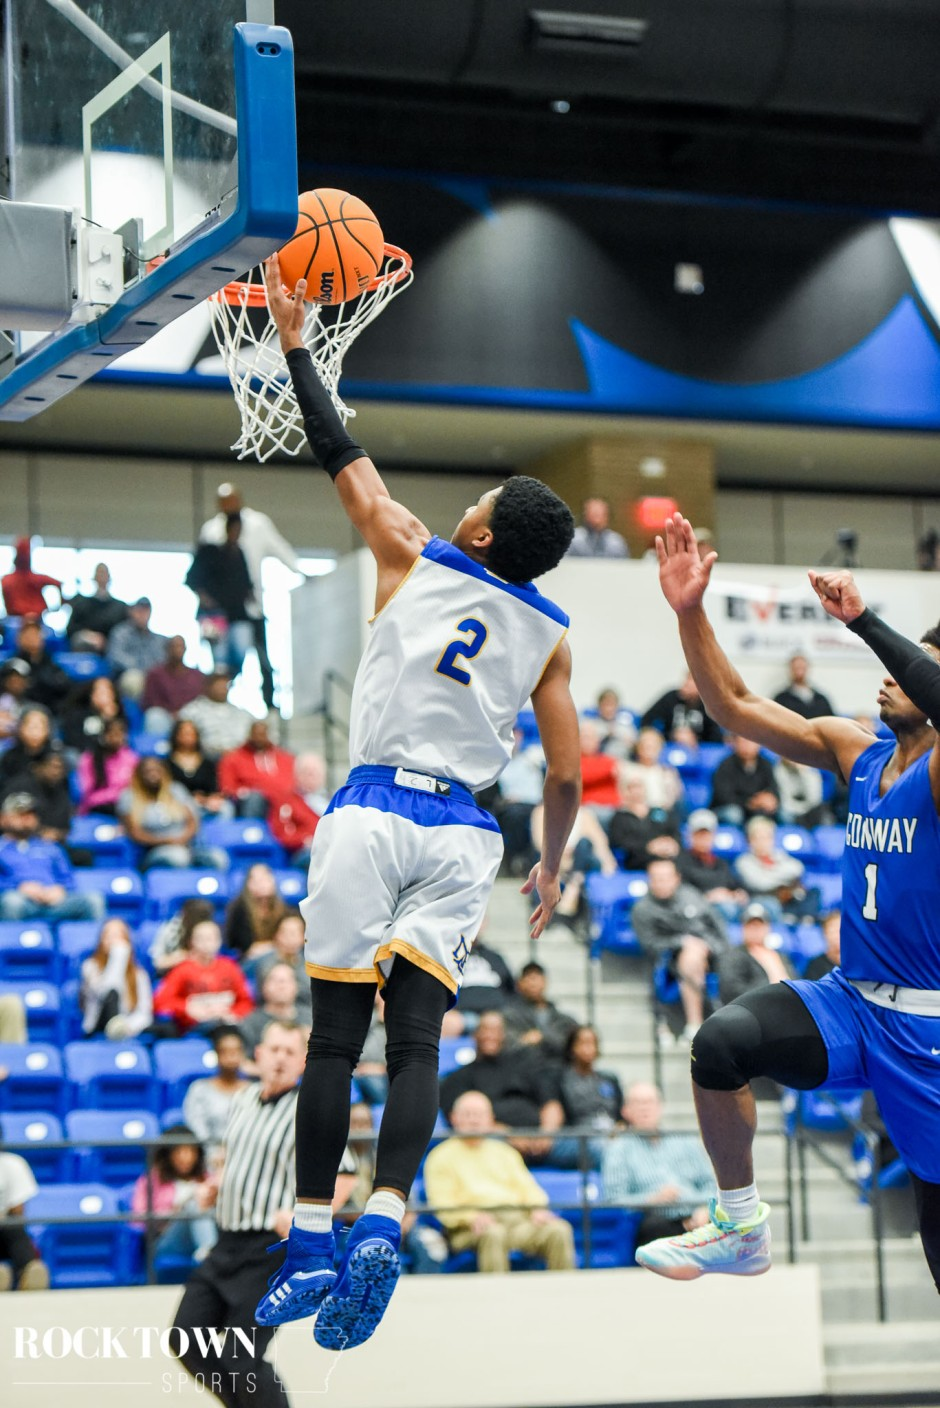 NLR_conway_bball_2020(i)-47